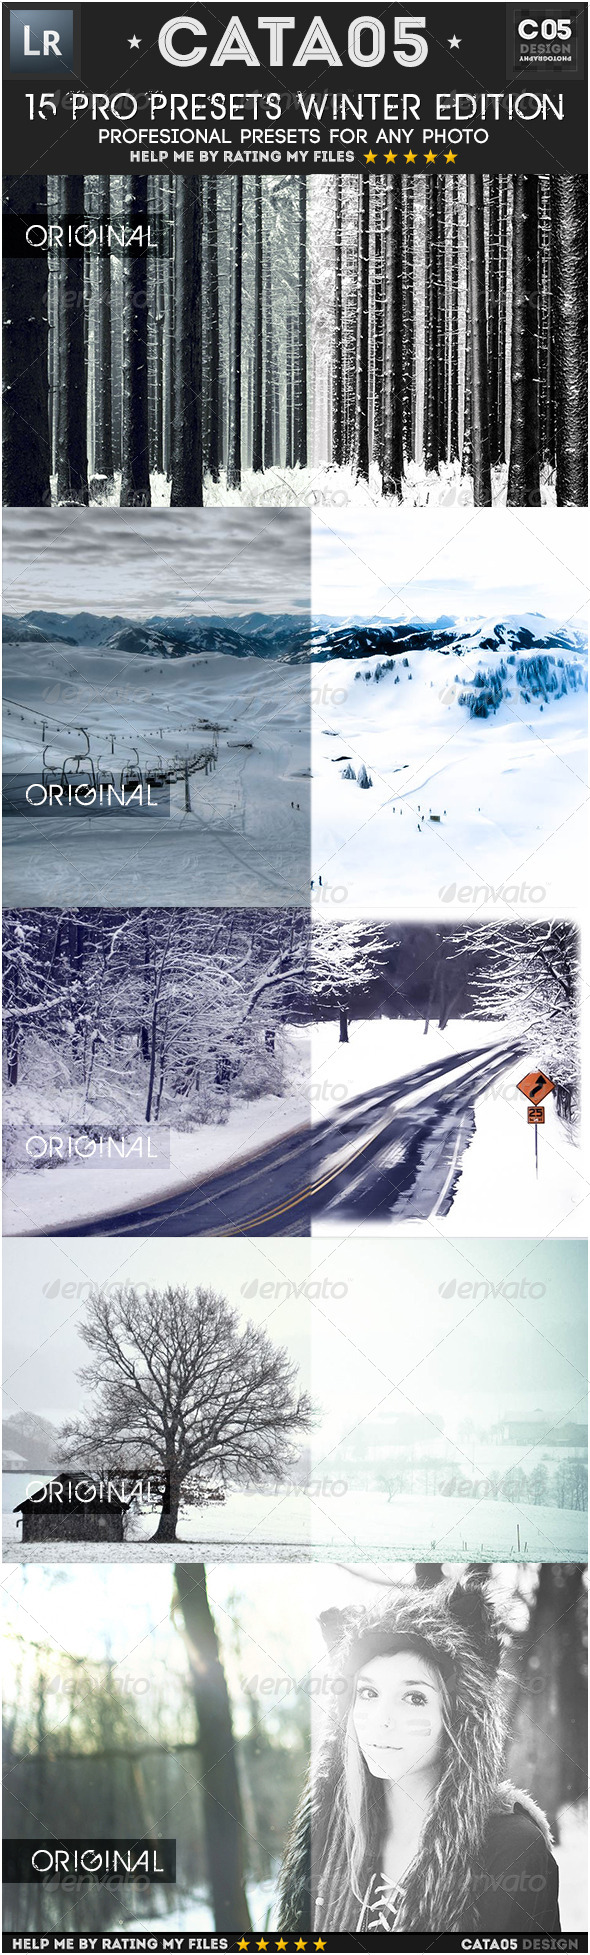 GraphicRiver 15 Pro Presets Winter Edition 6060541